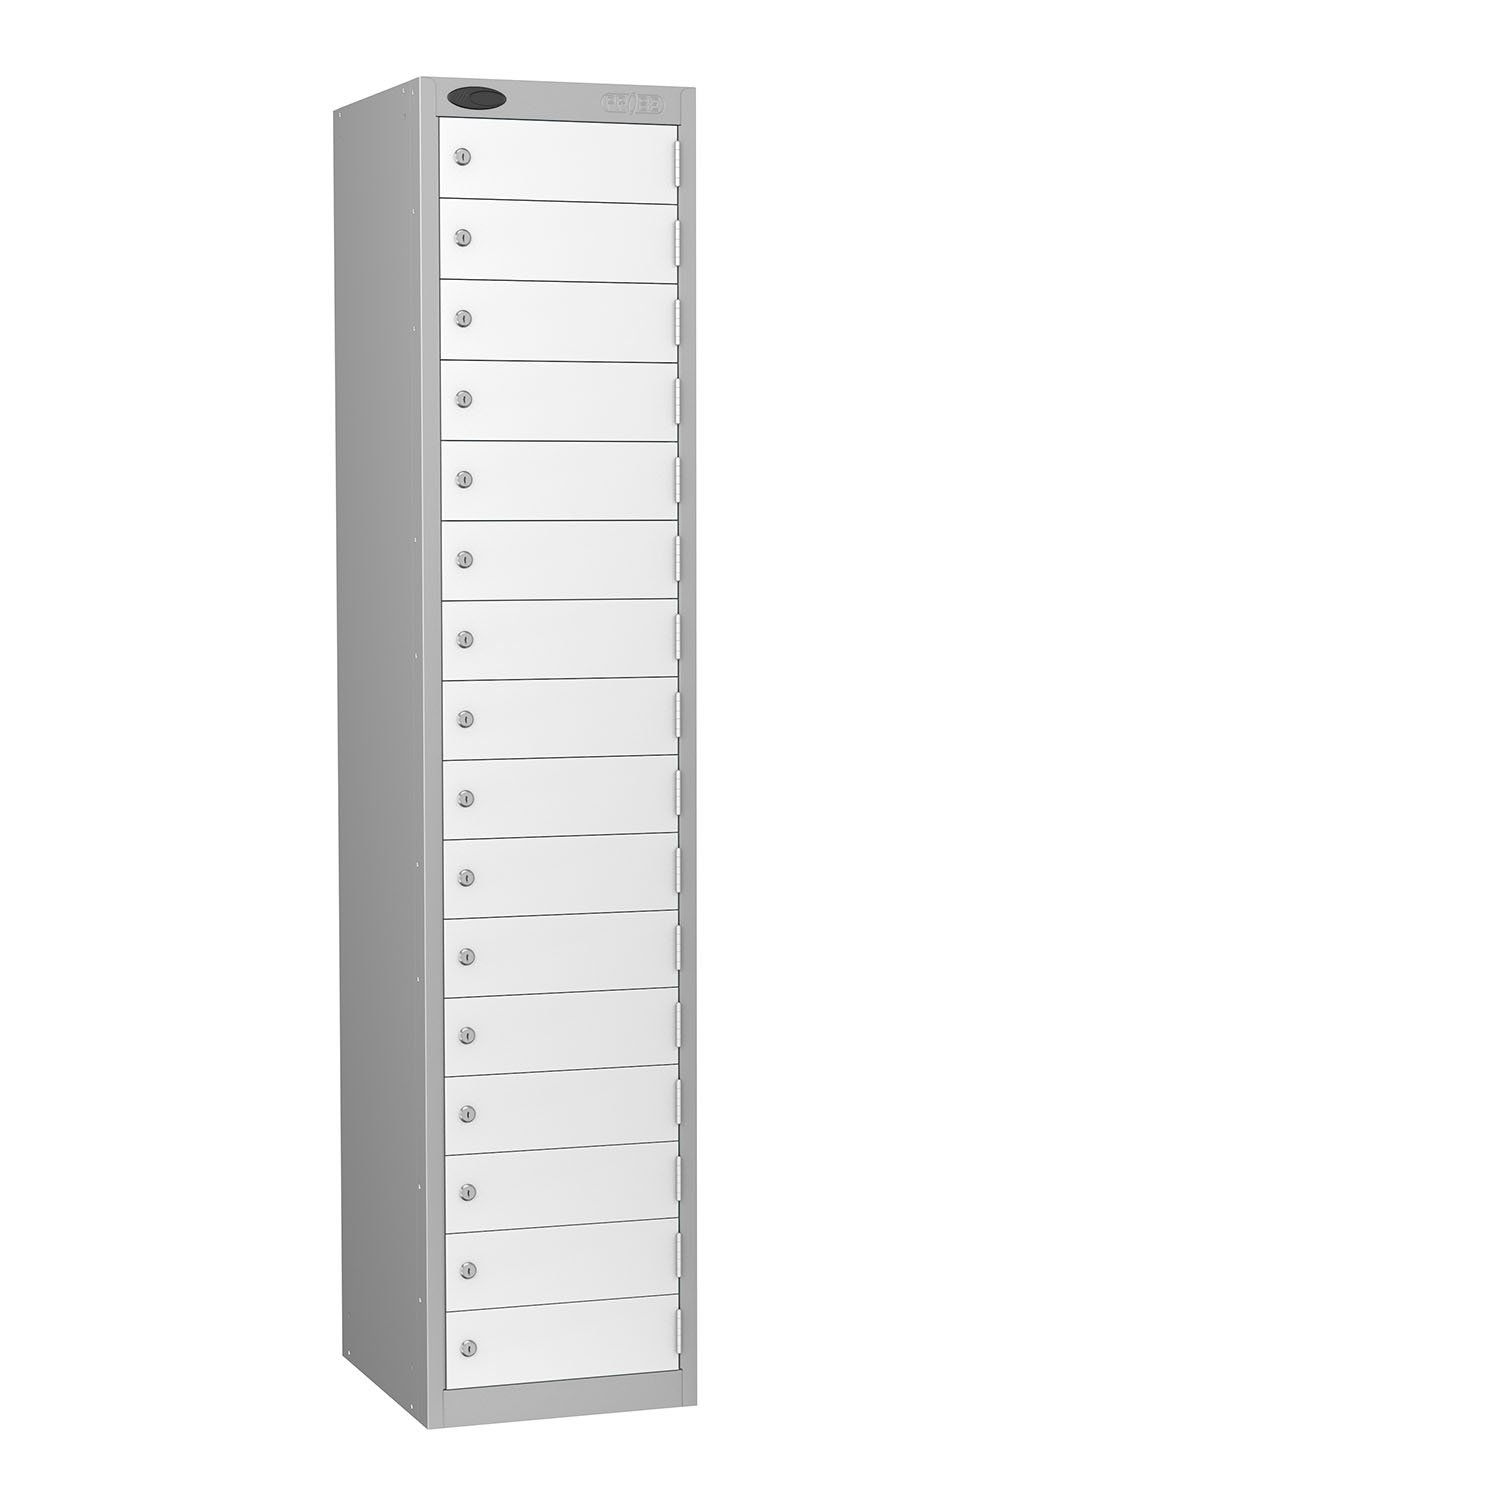 Probe 16 doors small compartments lockers in white colour